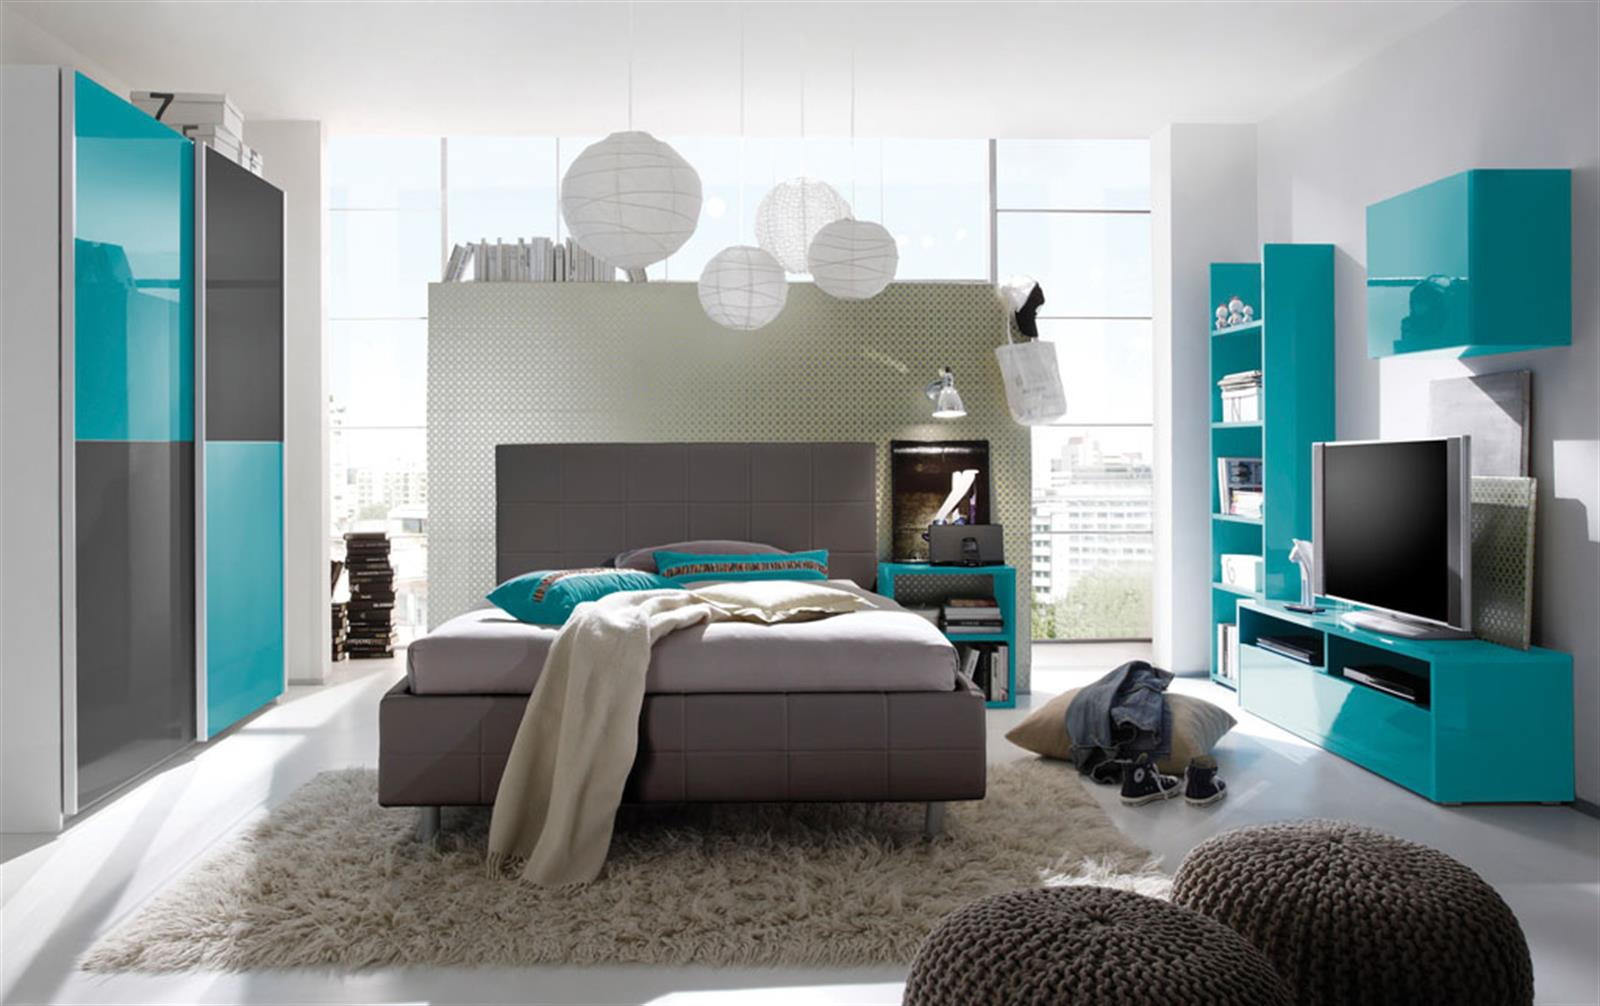 conforama micro ordinateur s che linge editus. Black Bedroom Furniture Sets. Home Design Ideas